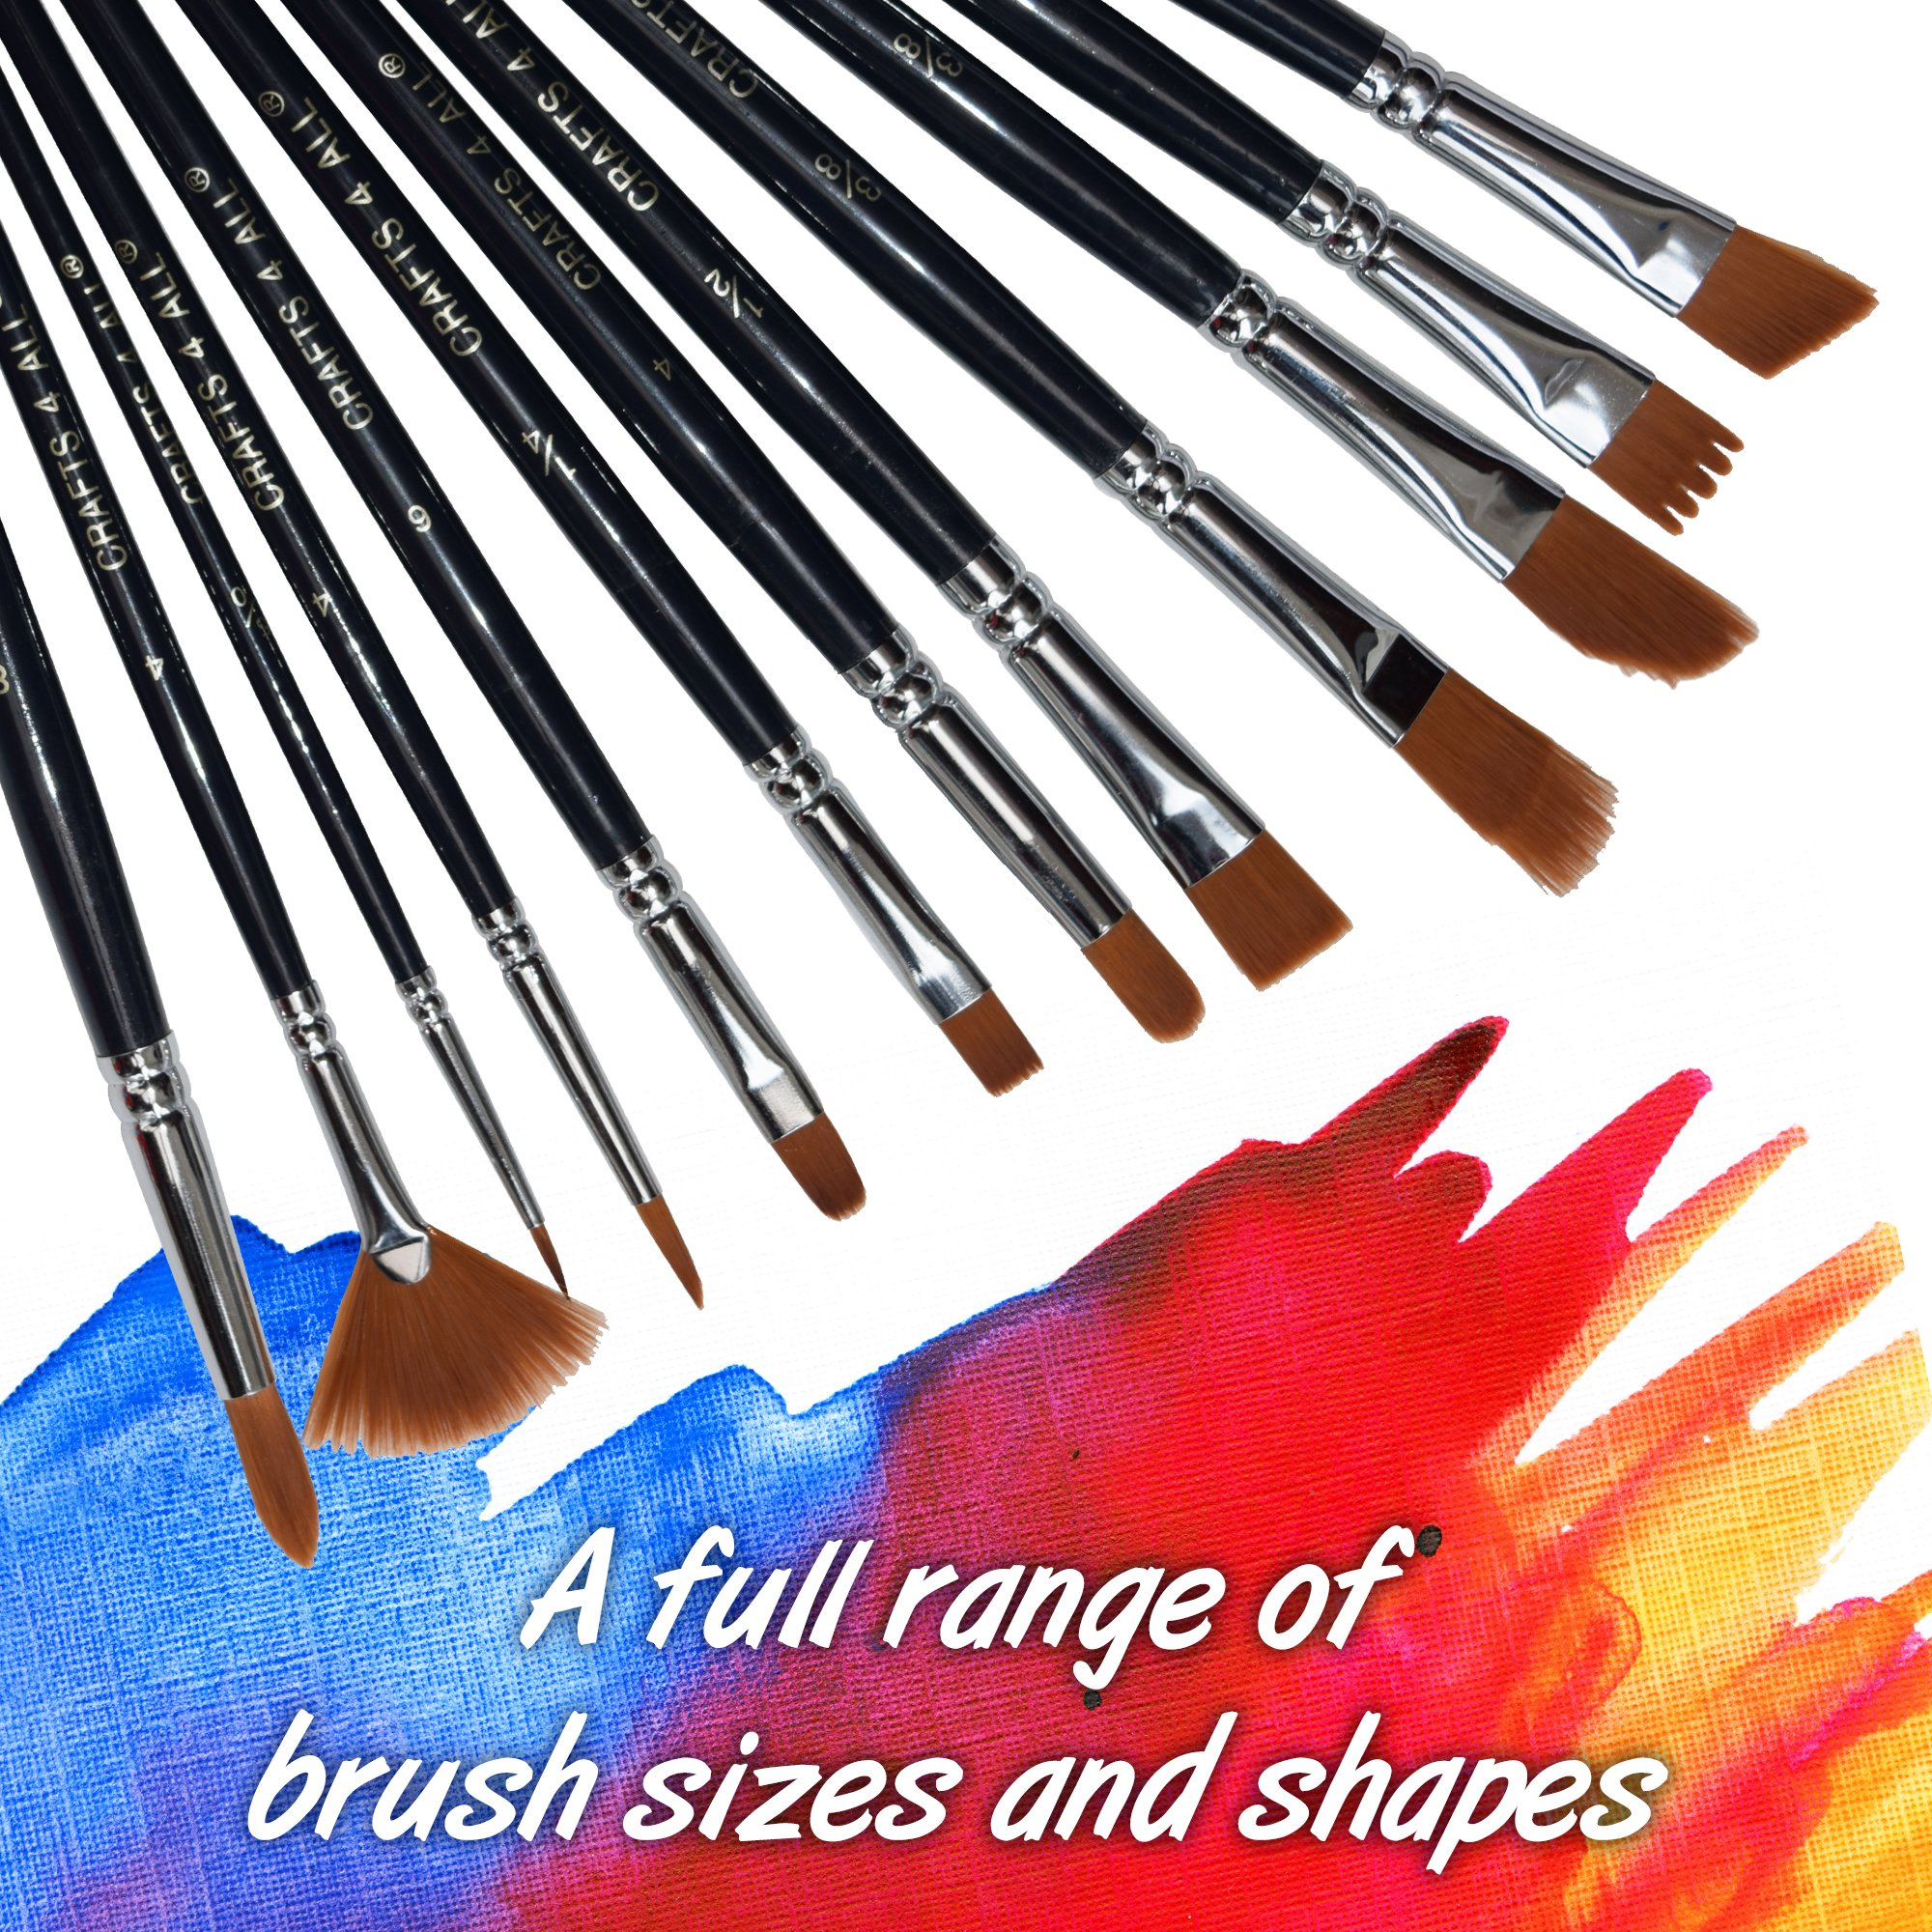 Paint Brushes 12 Pieces Set Professional Paint Brush Round Pointed Tip Nylon Hair artist acrylic brush for Acrylic Watercolor Oil Painting by Crafts 4 ALL